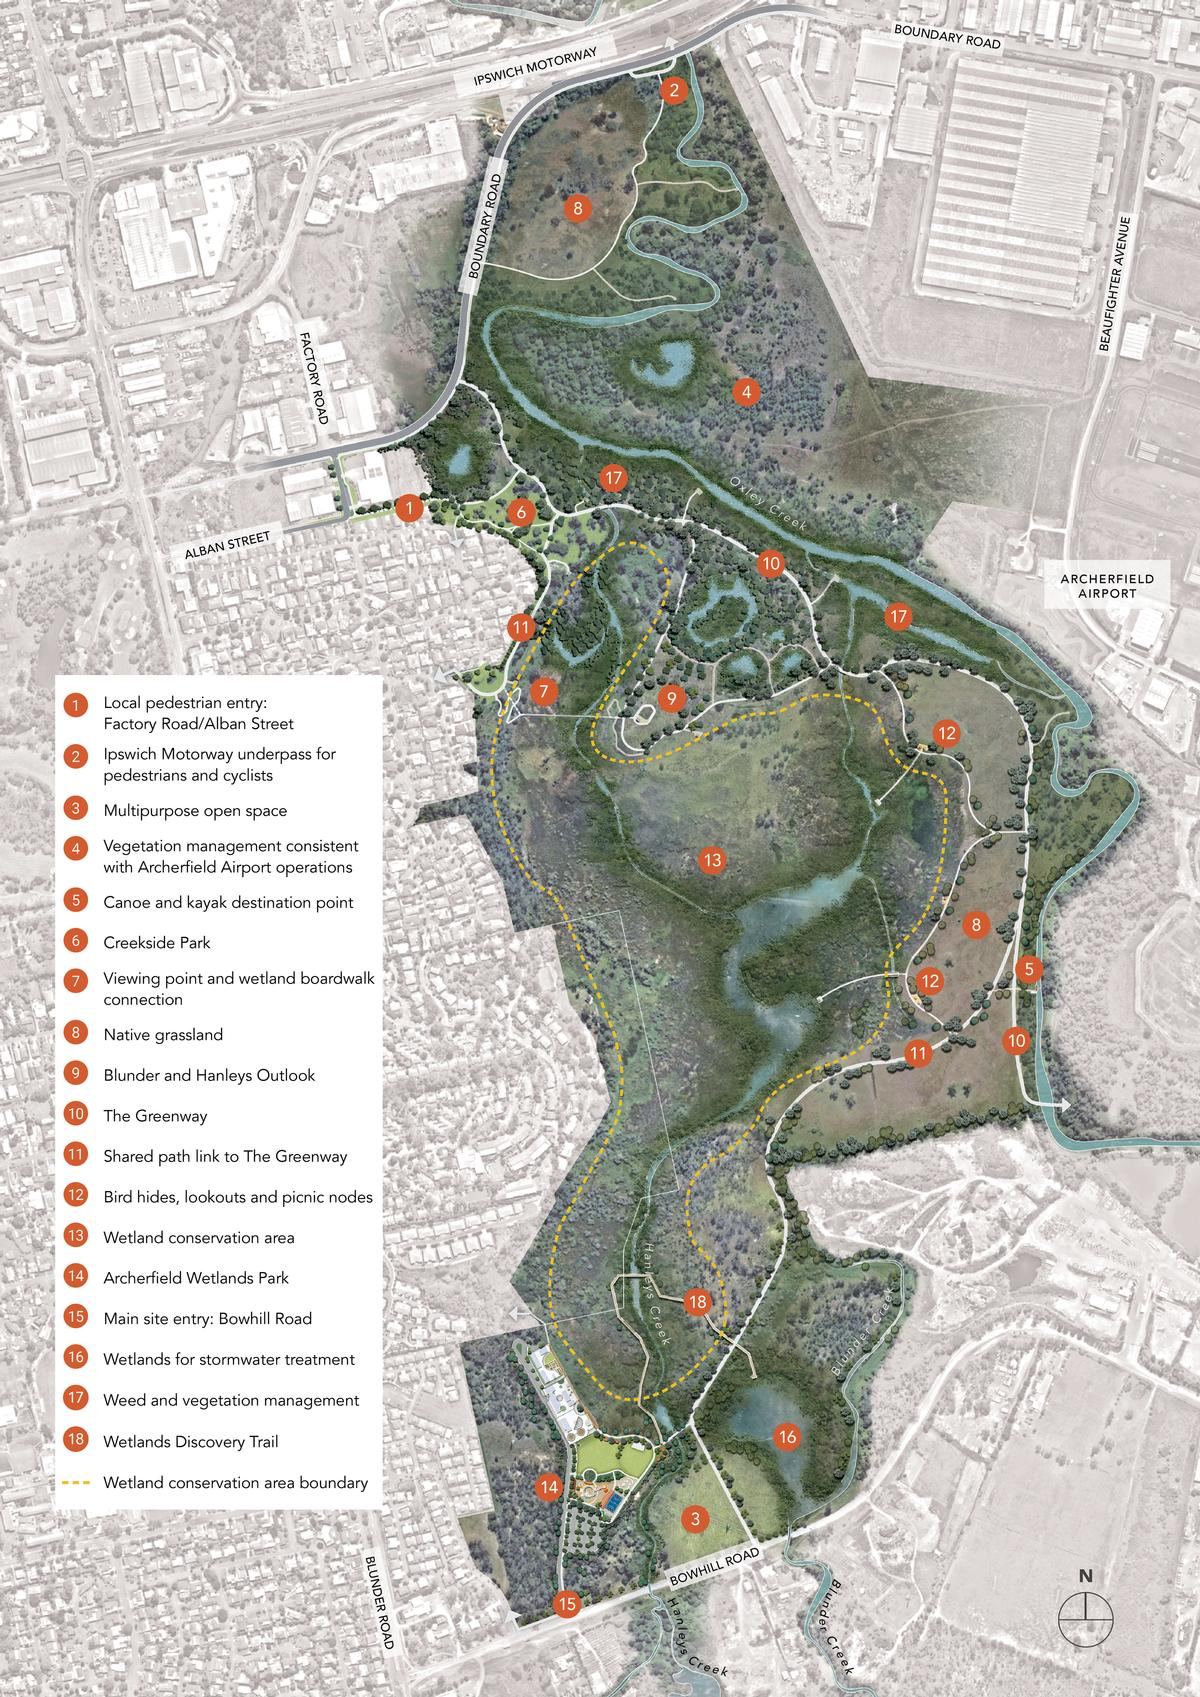 The redevelopment will cover 150ha (16 million sq ft) / Oxley Creek Transformation